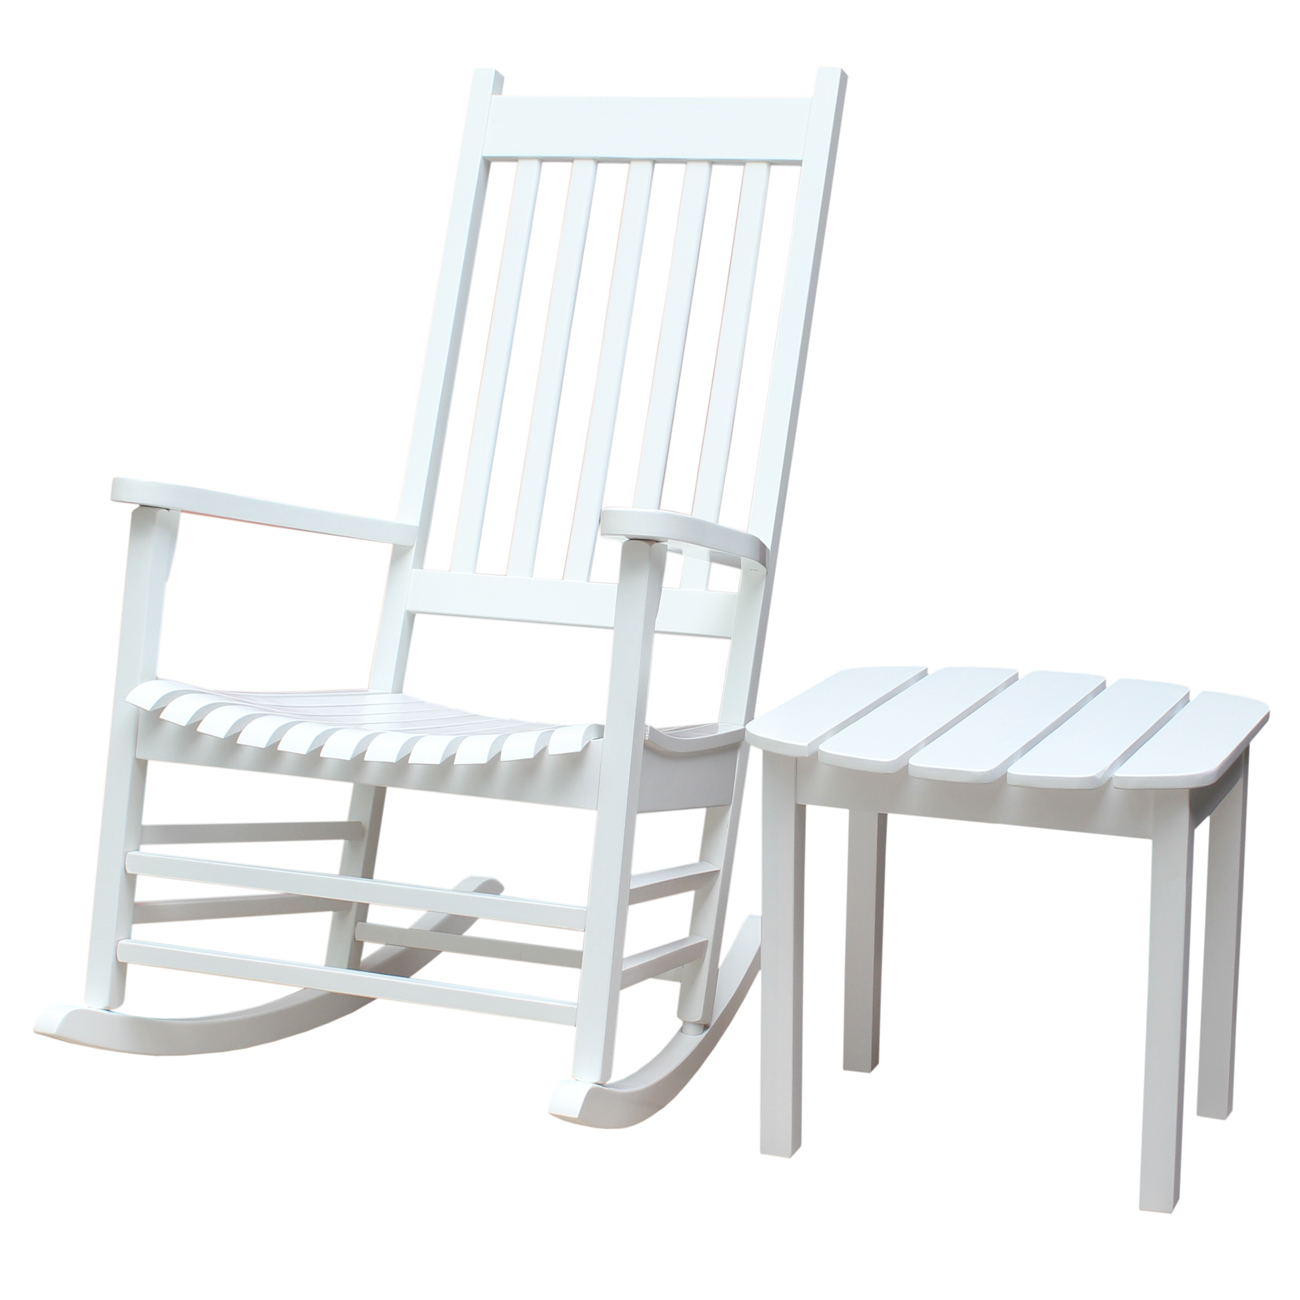 Porch Rocker with Side Table in White